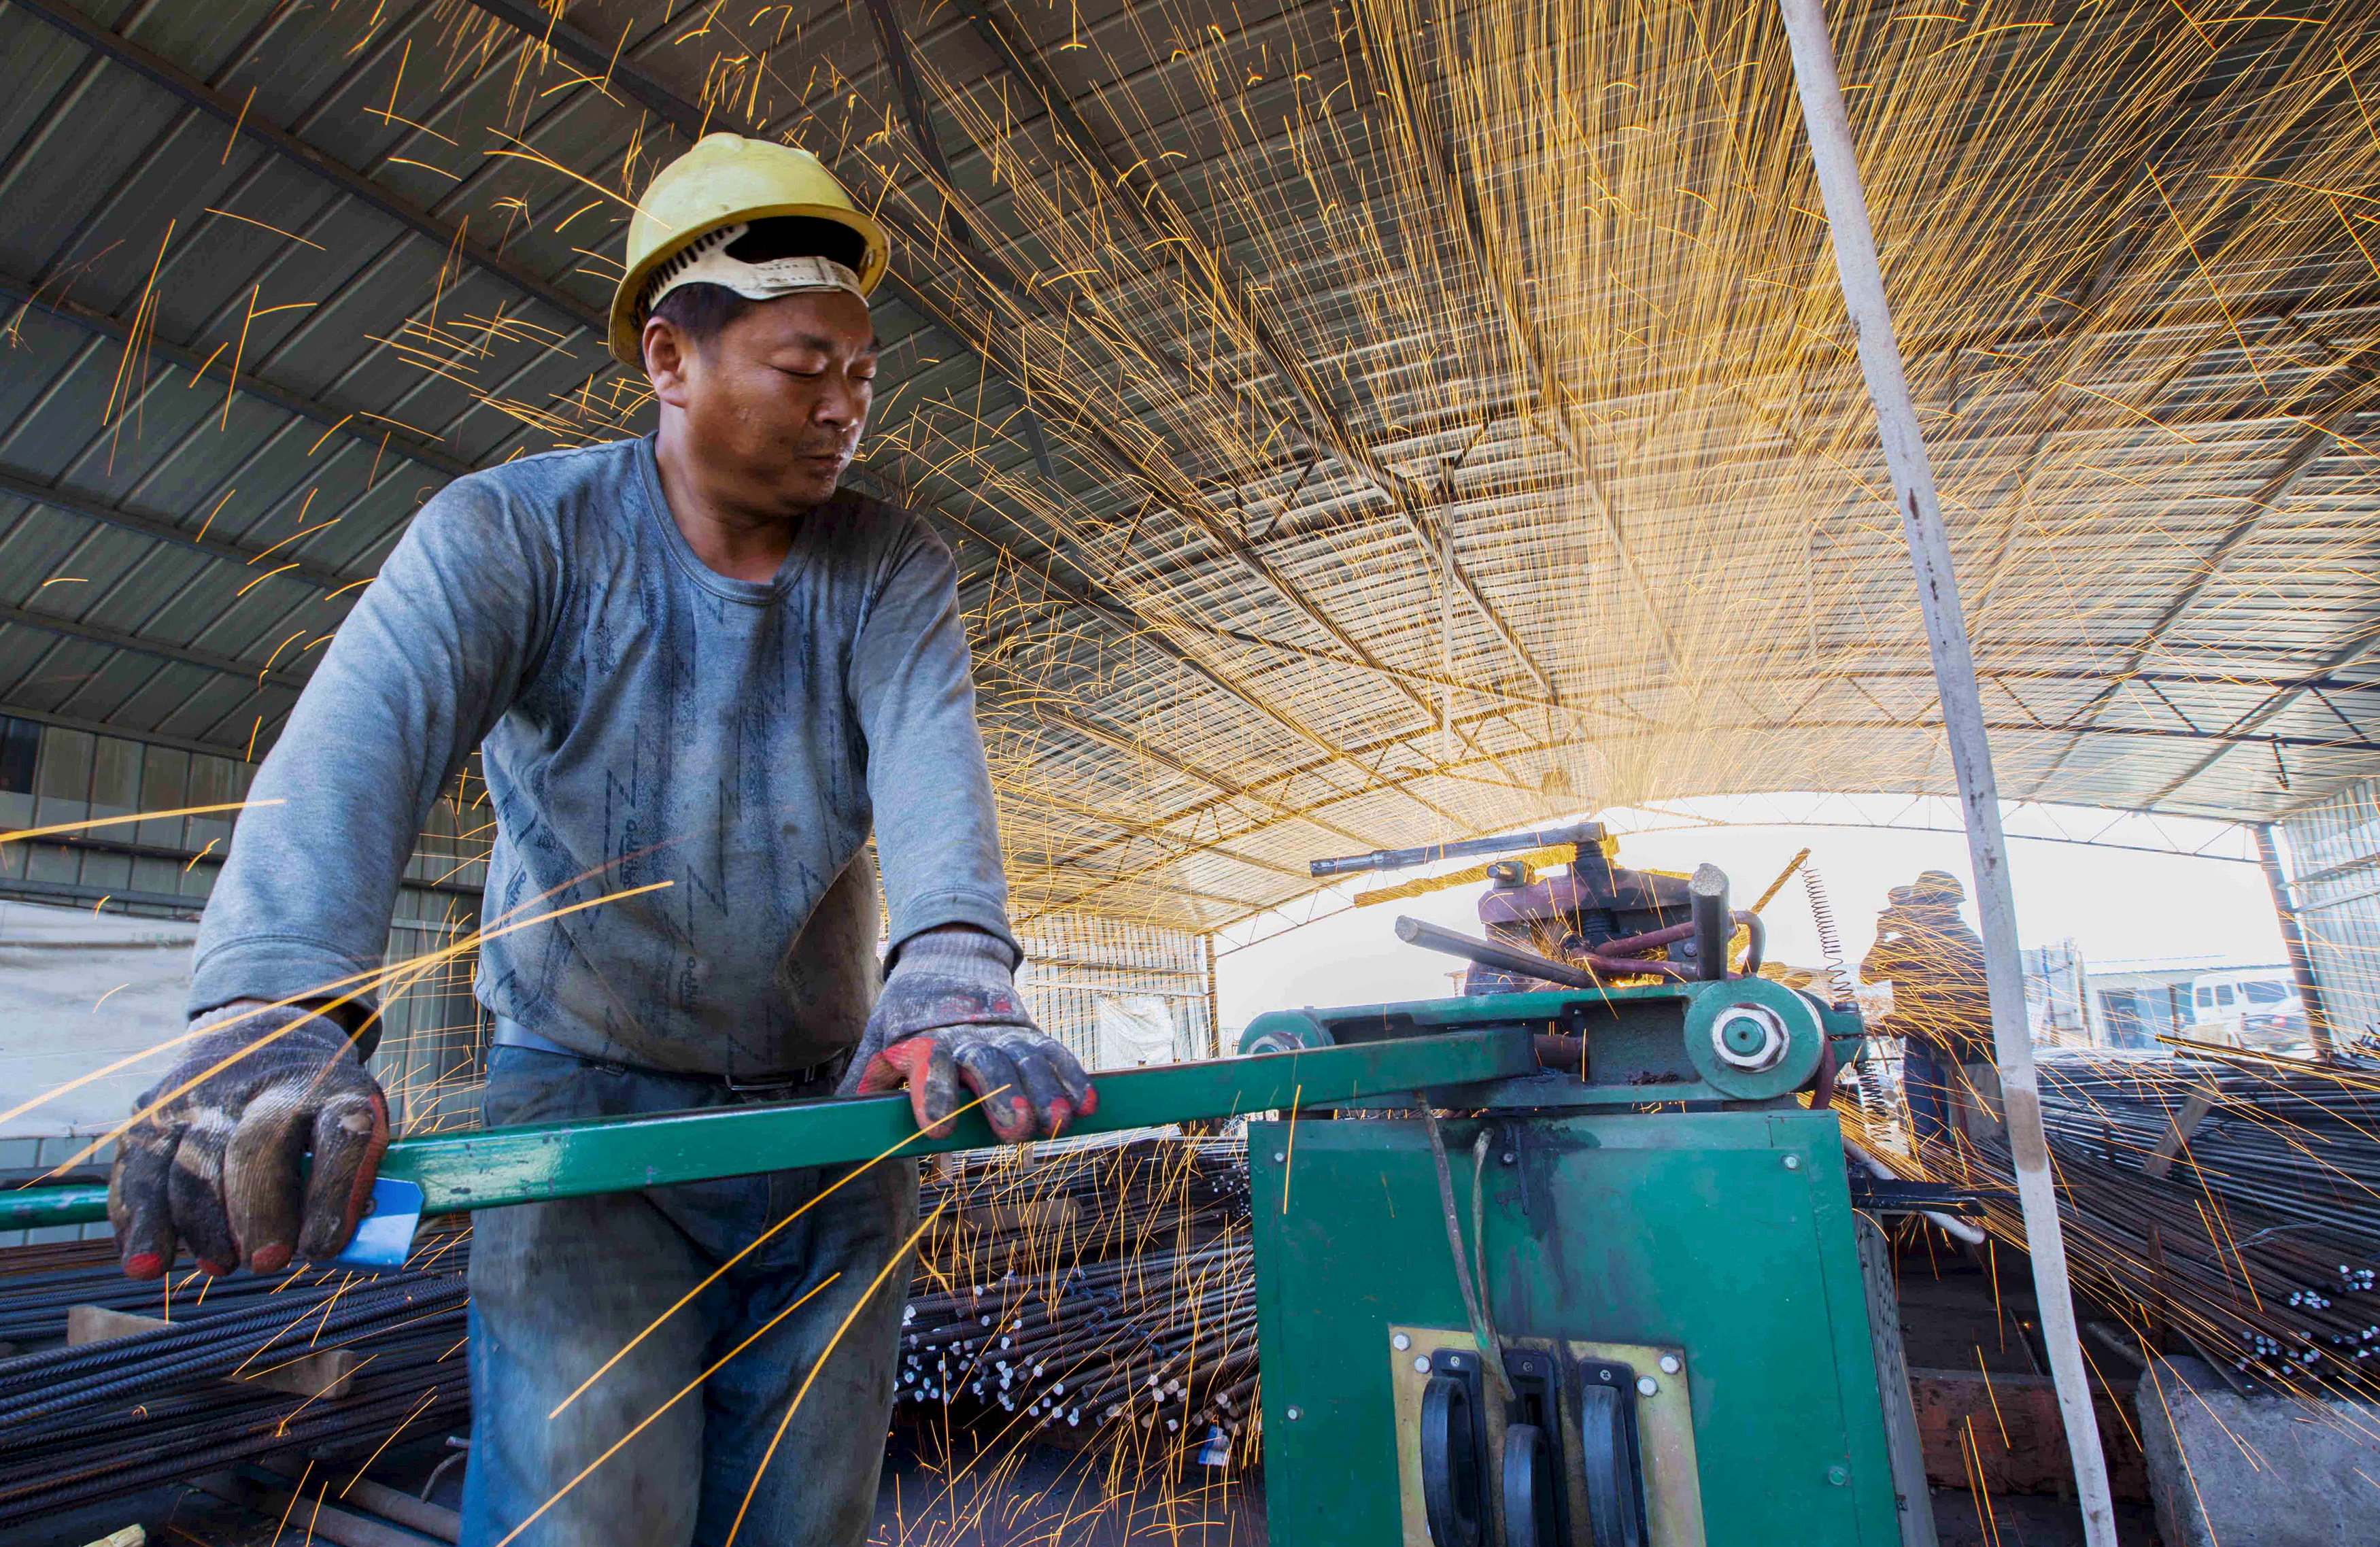 A laborer cuts steel bars at a railway-bridge construction site in Lianyungang, in the Chinese province of Jiangsu, on Sept. 12, 2015